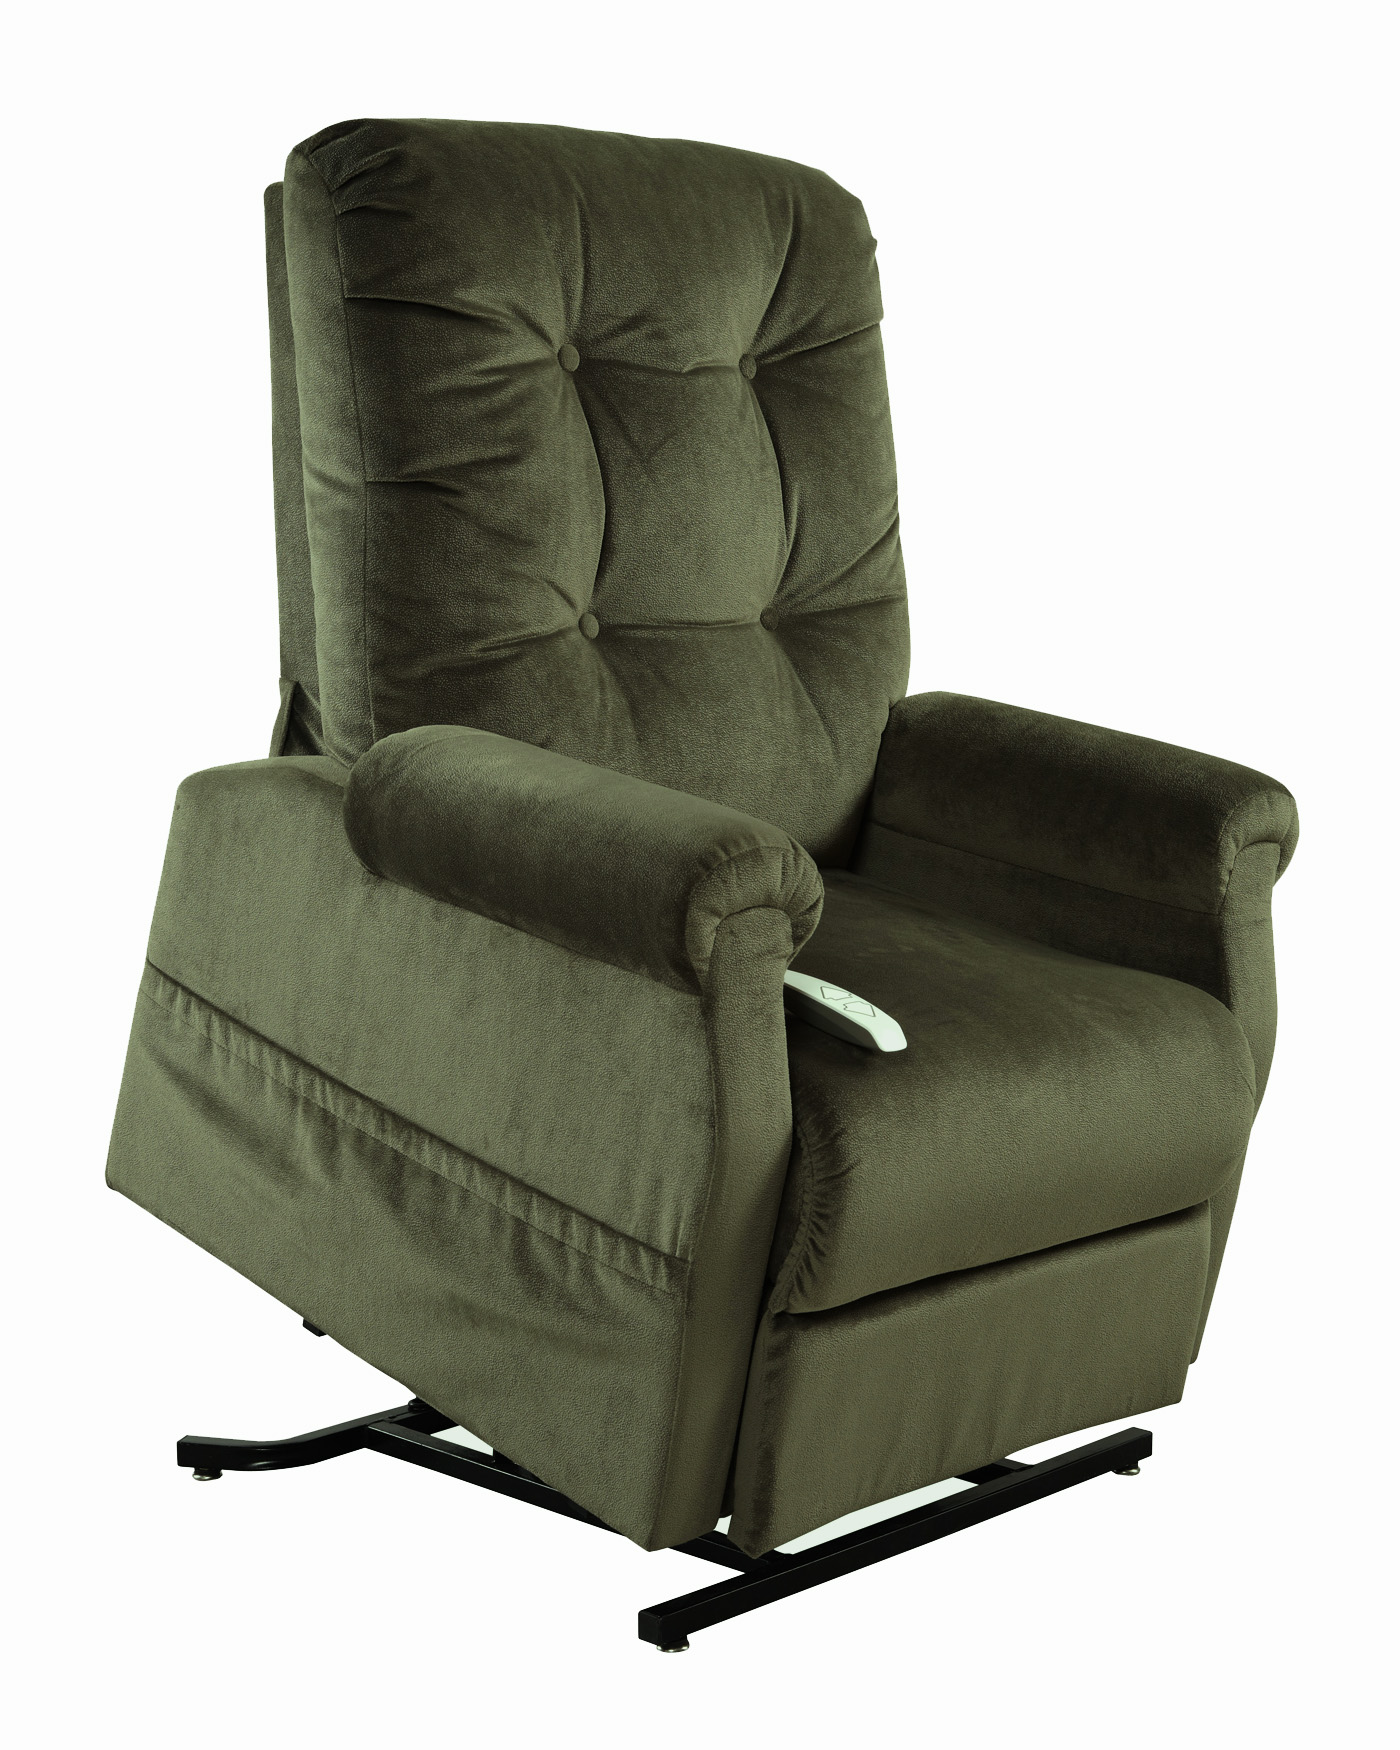 Lift Chairs Recliners Mega Motion As4001 3 Position Power Lift Chair Anguilla Fabric